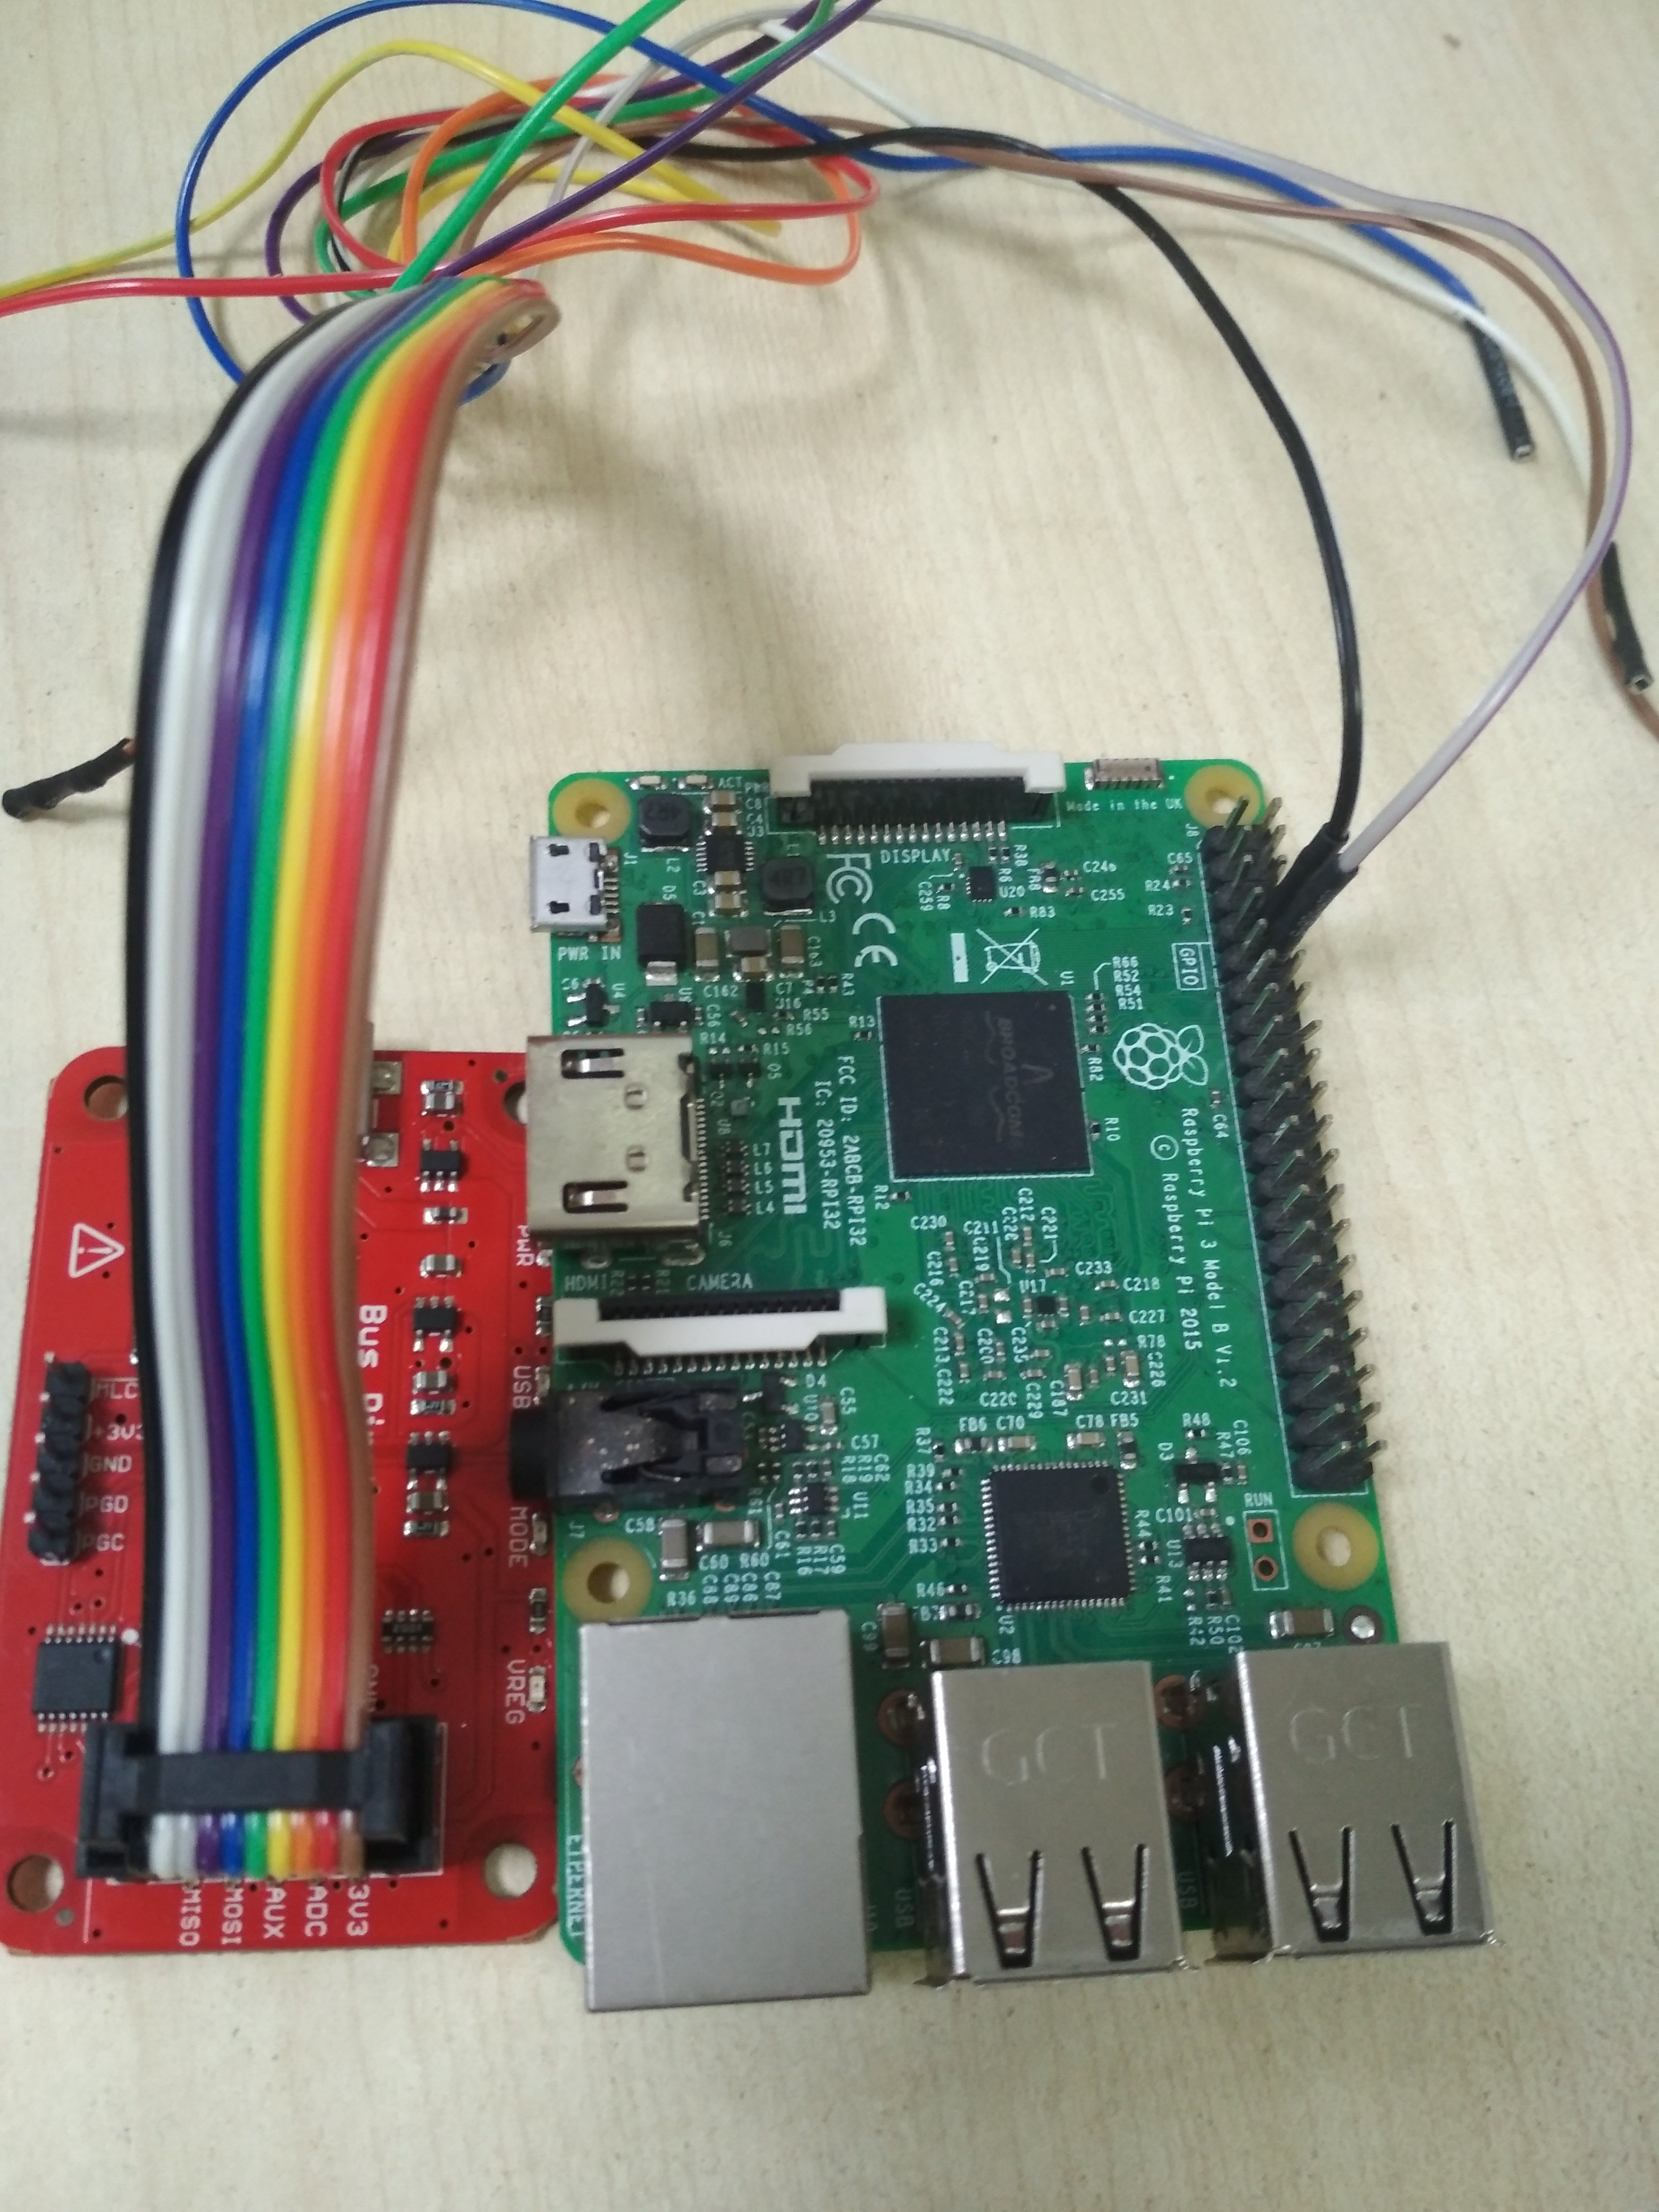 Final wiring setup of raspberry pi and buspirate